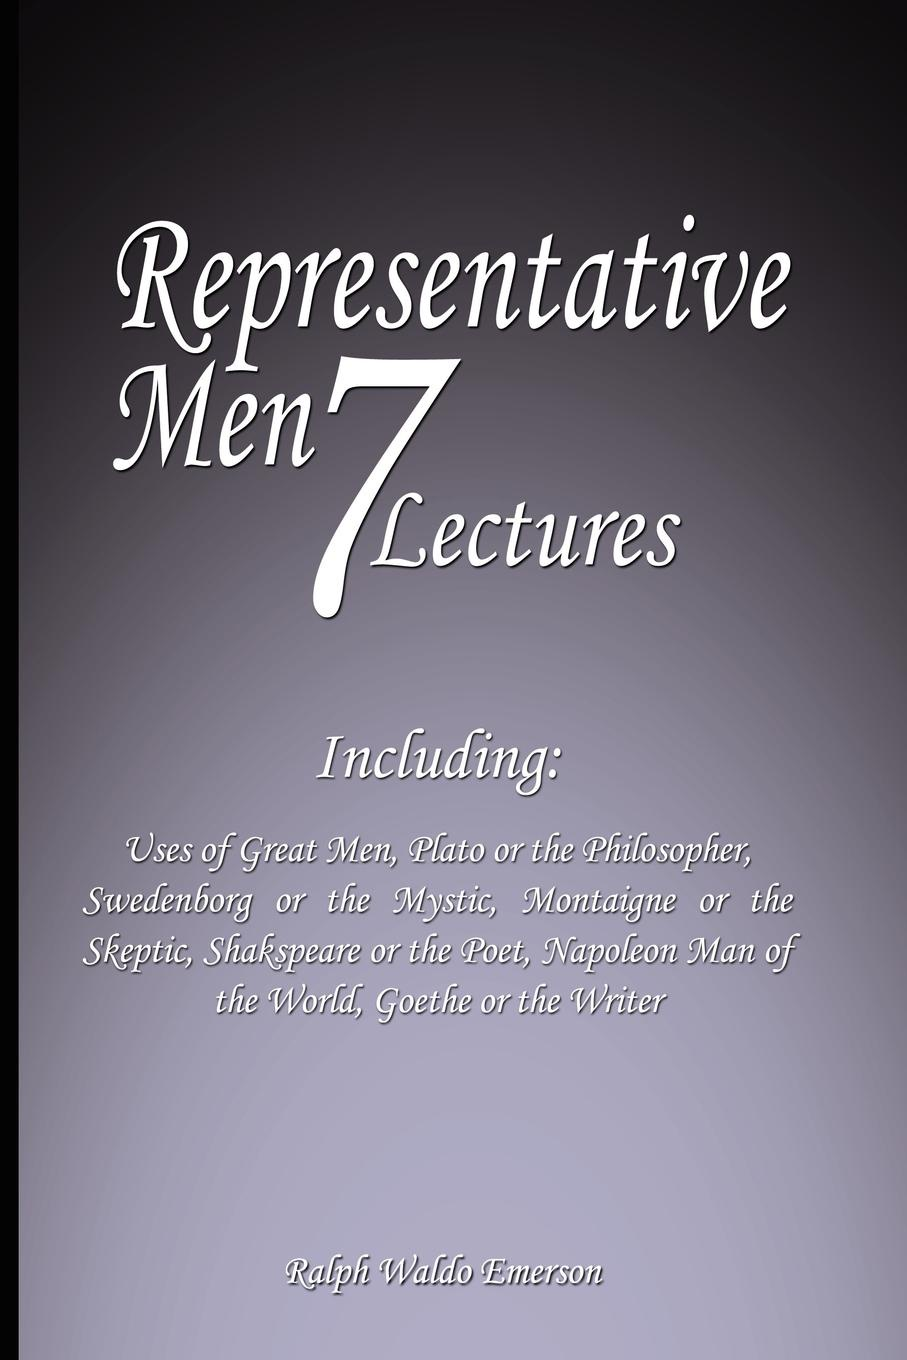 Ralph Waldo Emerson Representative Men. Seven Lectures - Including: Uses of Great Men, Plato or the Philosopher, Swedenborg or the Mystic, Montaigne or the Skeptic, Shakspeare or the Poet, Napoleon Man of the World AND Goethe or the Writer browne george waldo where duty called or in honor bound